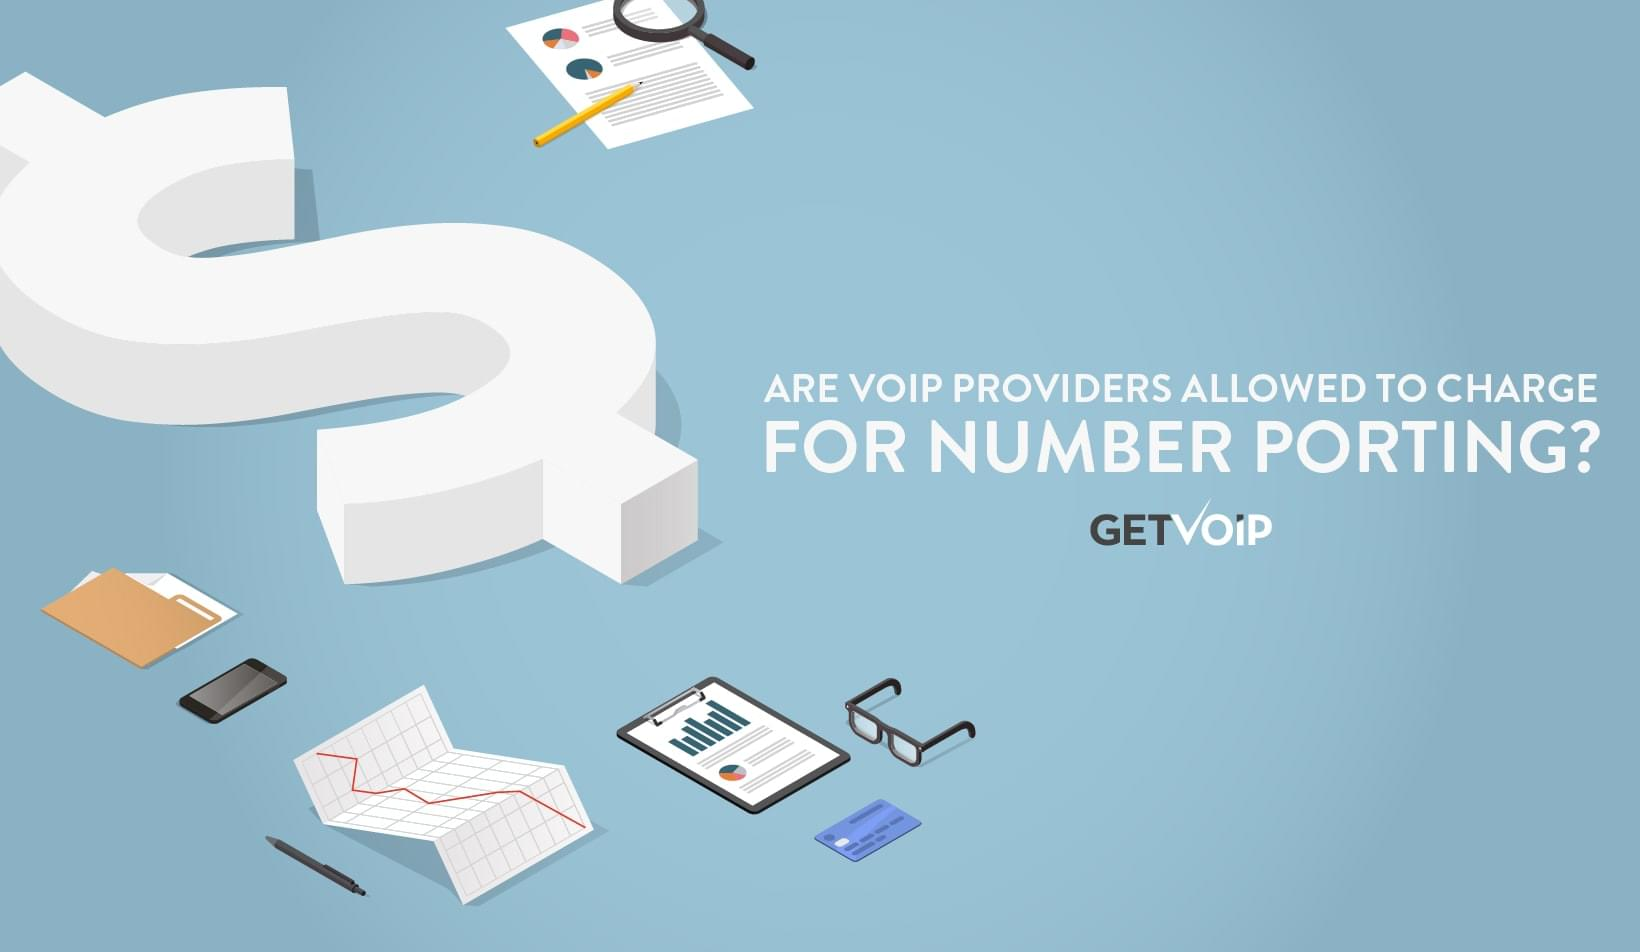 Are VoIP Providers Allowed to Charge for Number Porting?